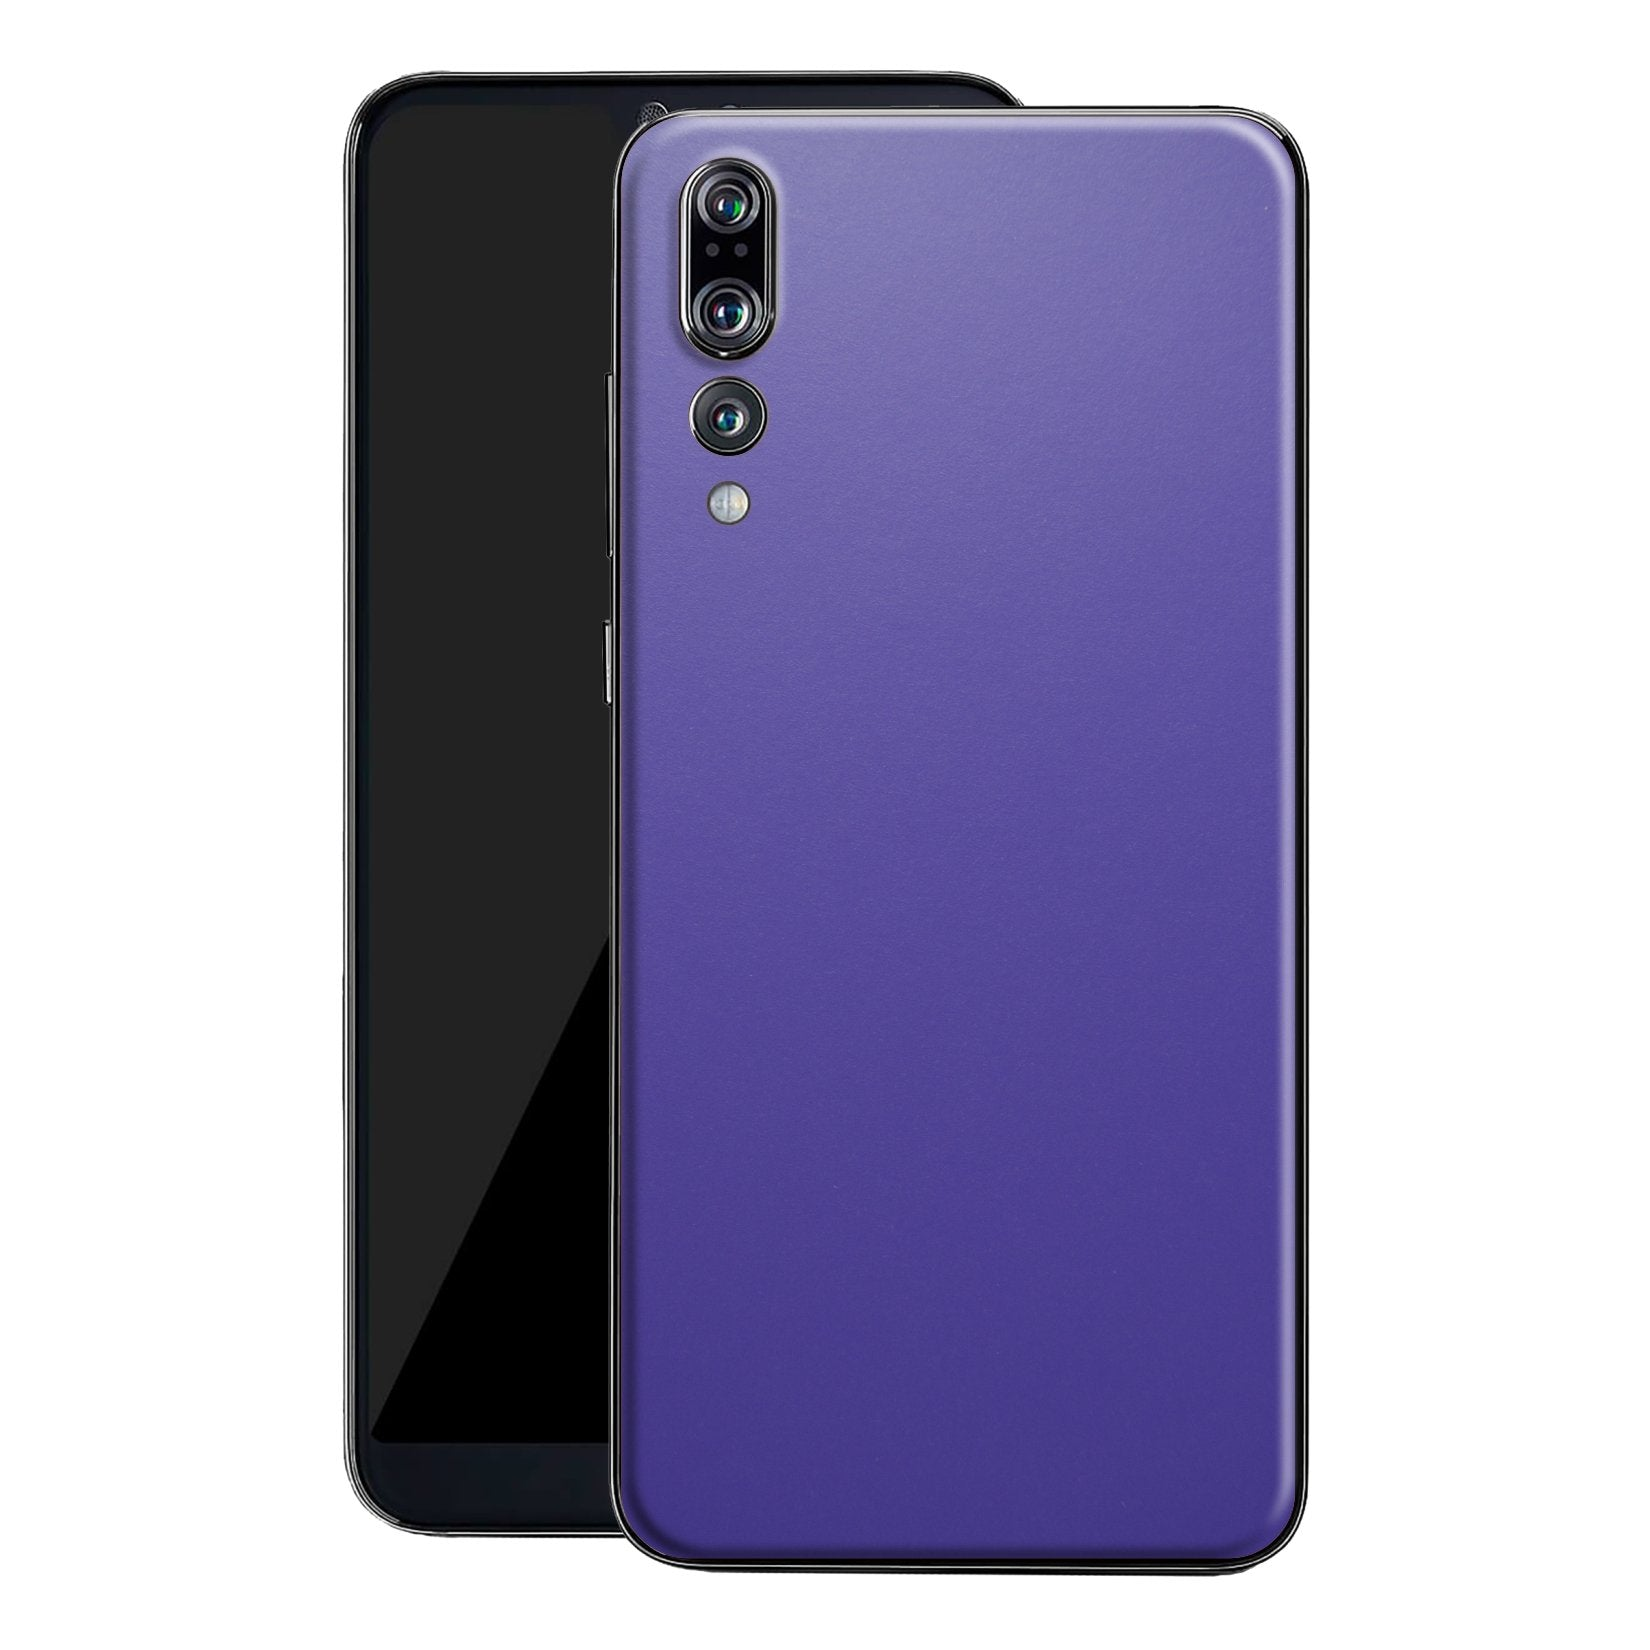 Huawei P20 PRO Royal Purple Matt Skin, Decal, Wrap, Protector, Cover by EasySkinz | EasySkinz.com